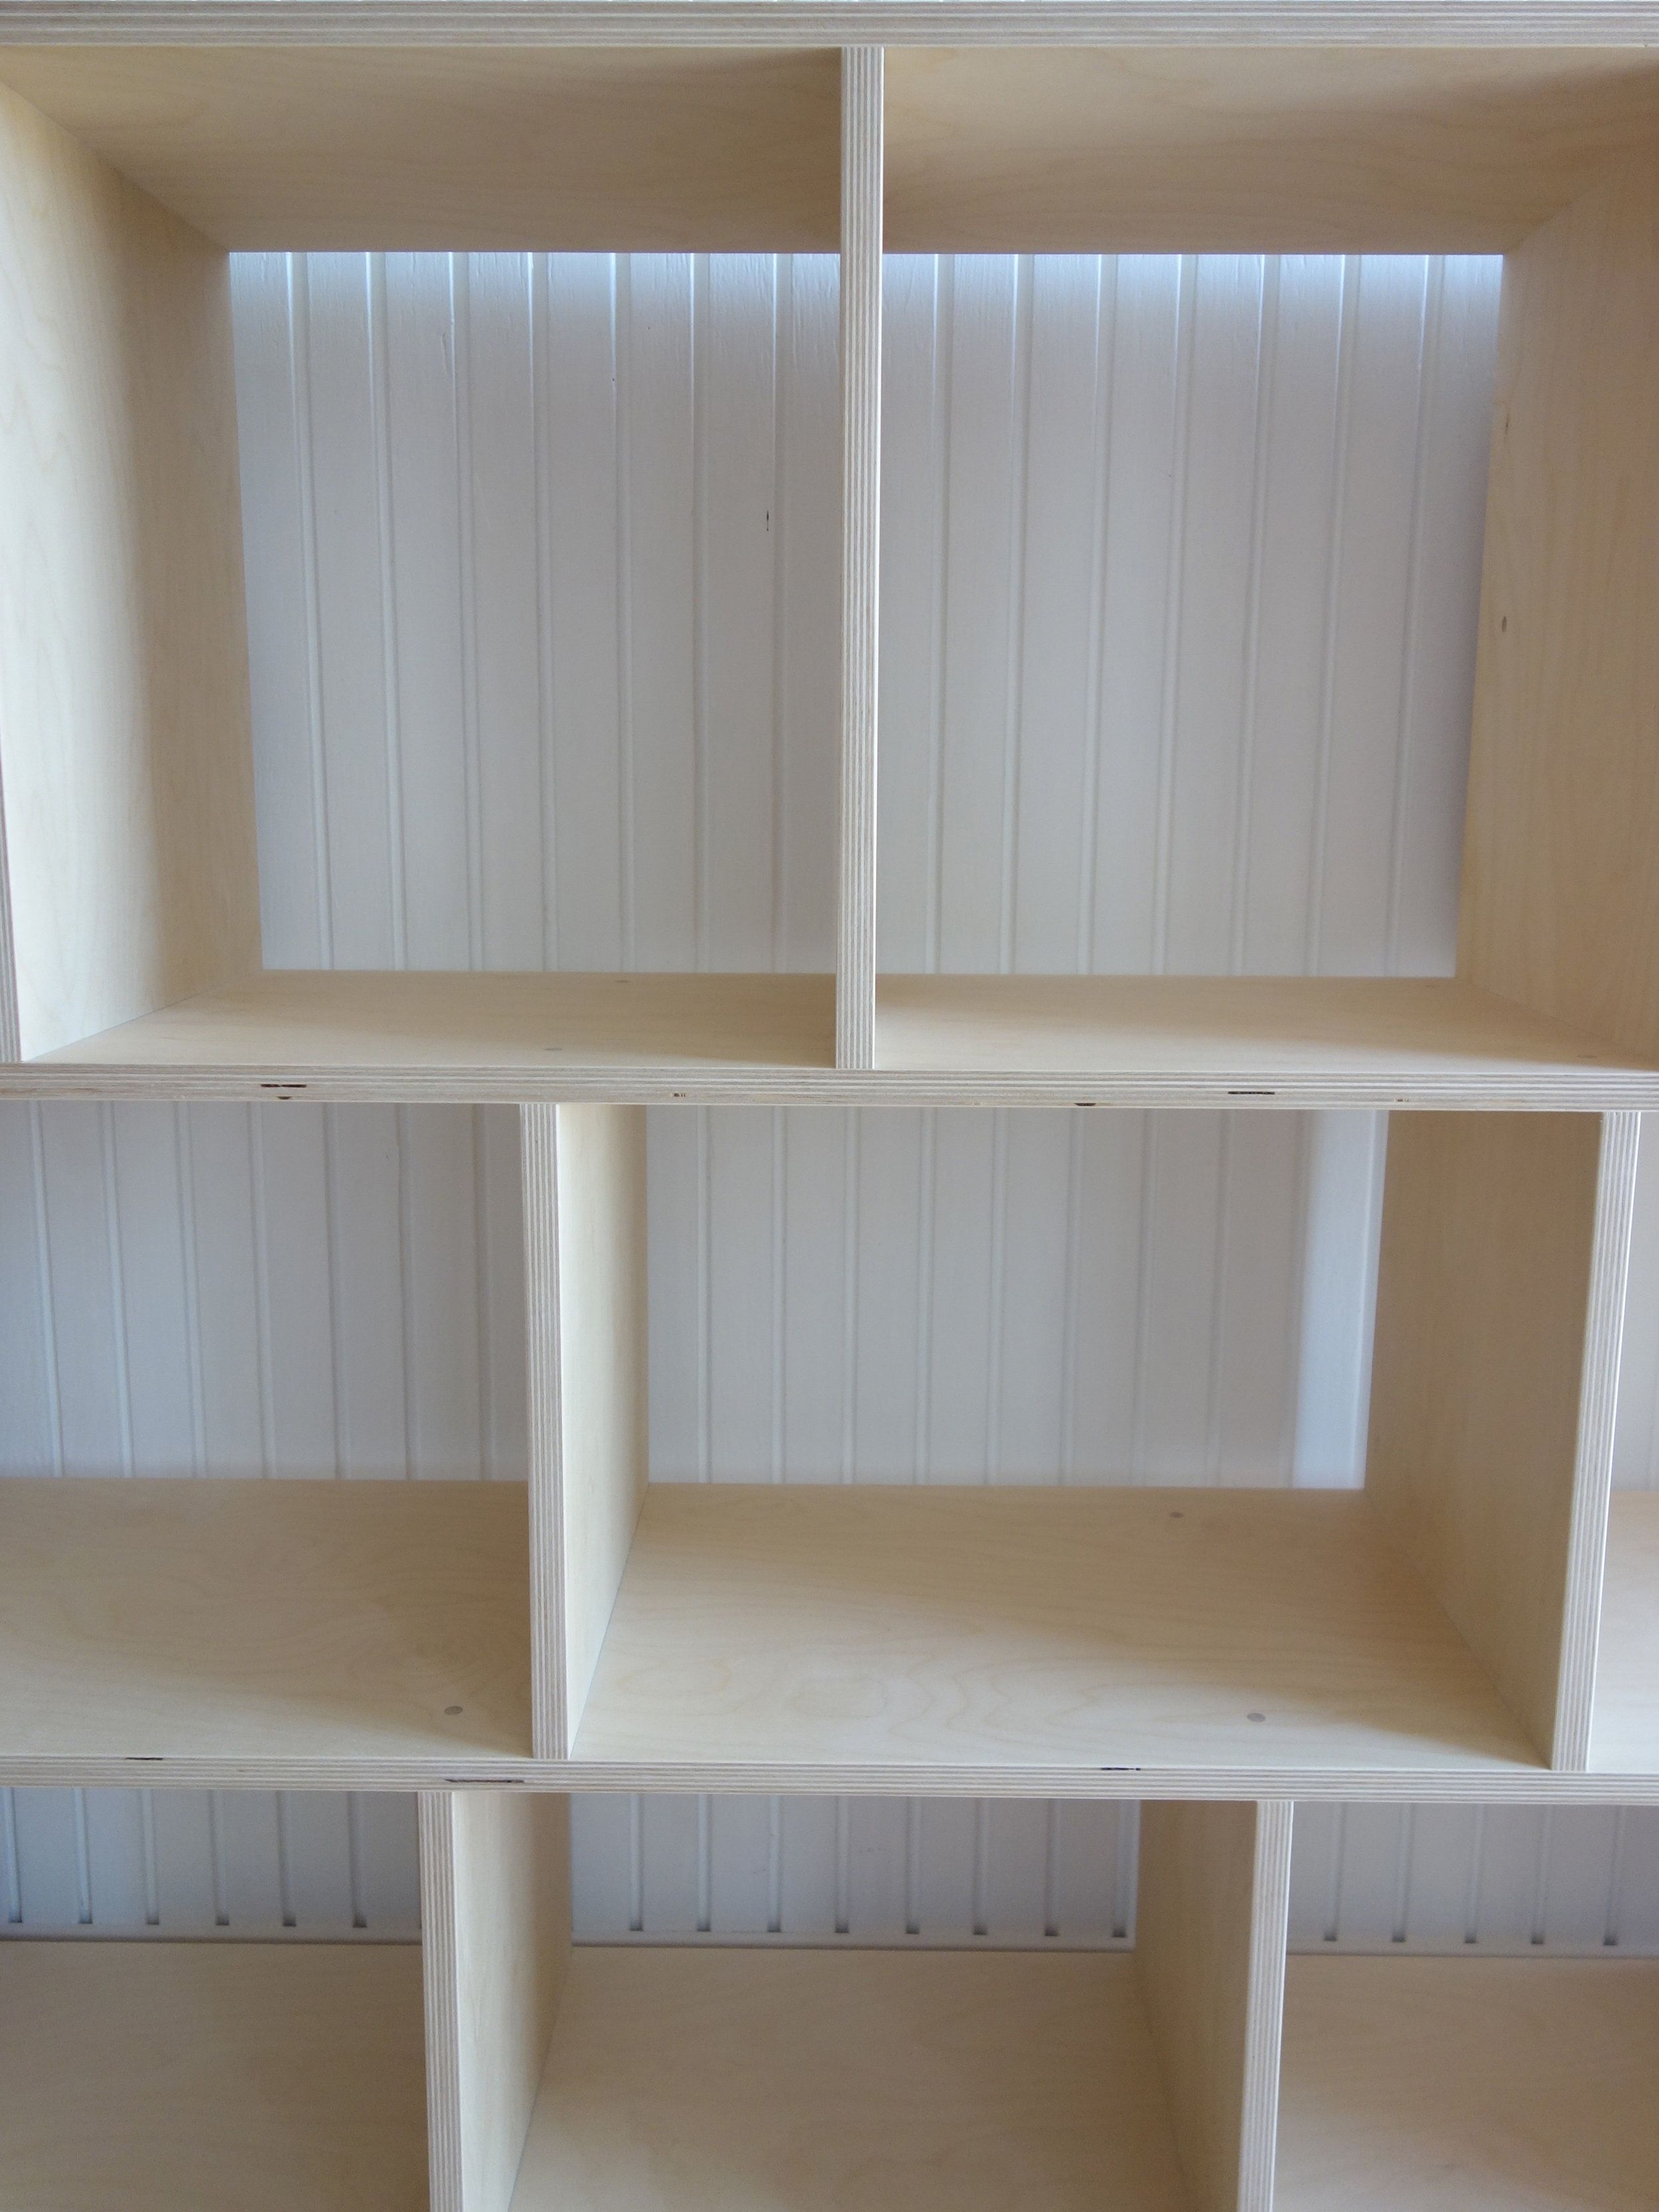 Record Shelving product image 6